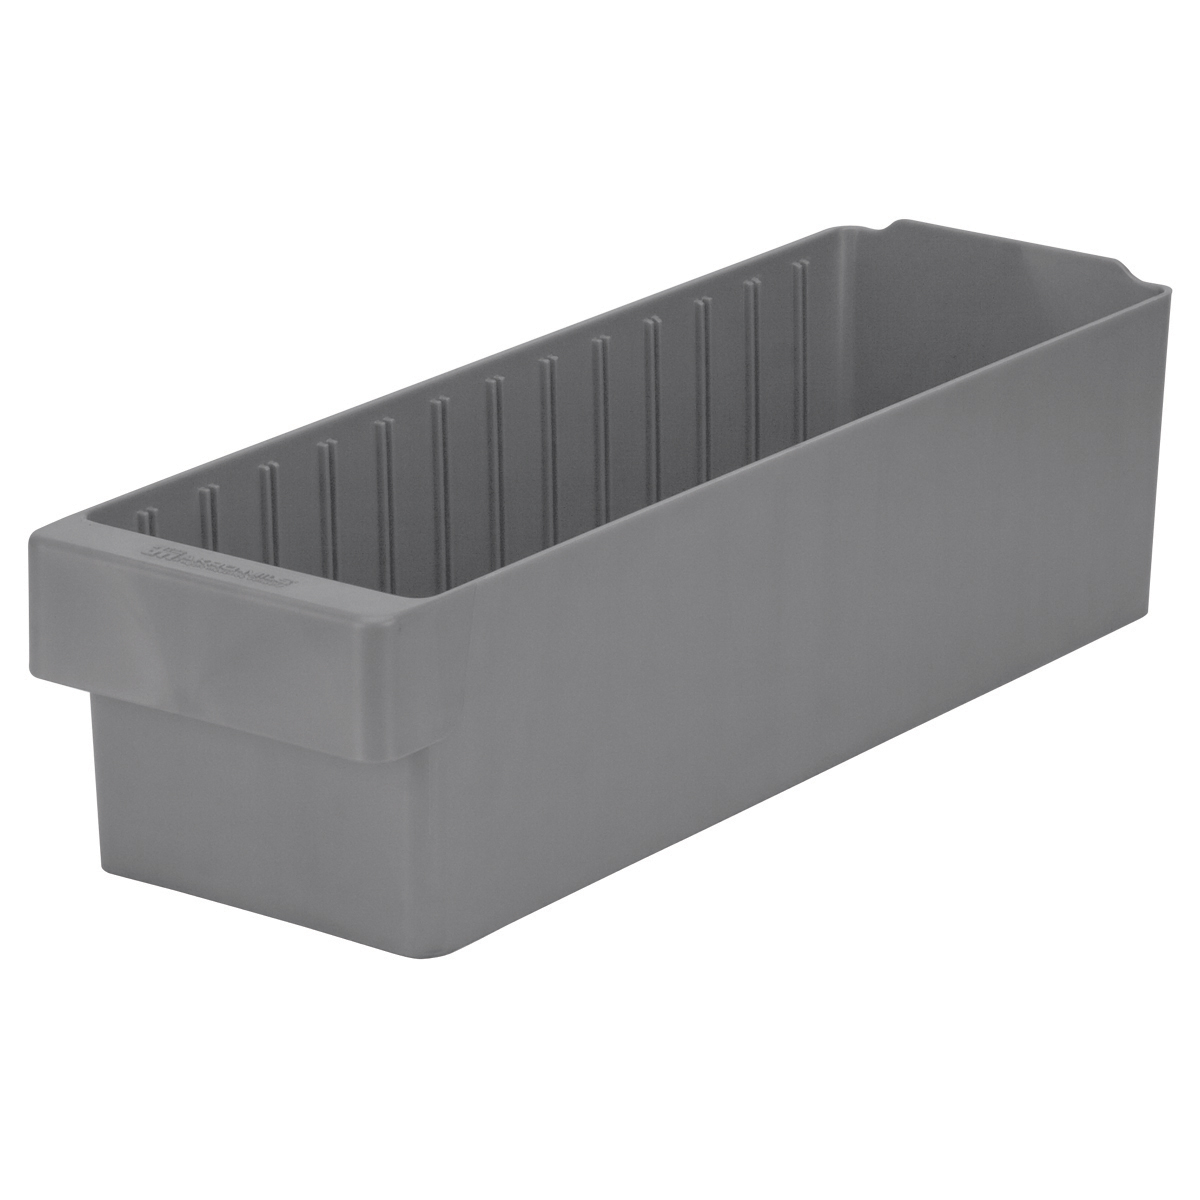 AkroDrawer 17-5/8 x 5-5/8 x 4-5/8, Gray (31168GRY).  This item sold in carton quantities of 6.